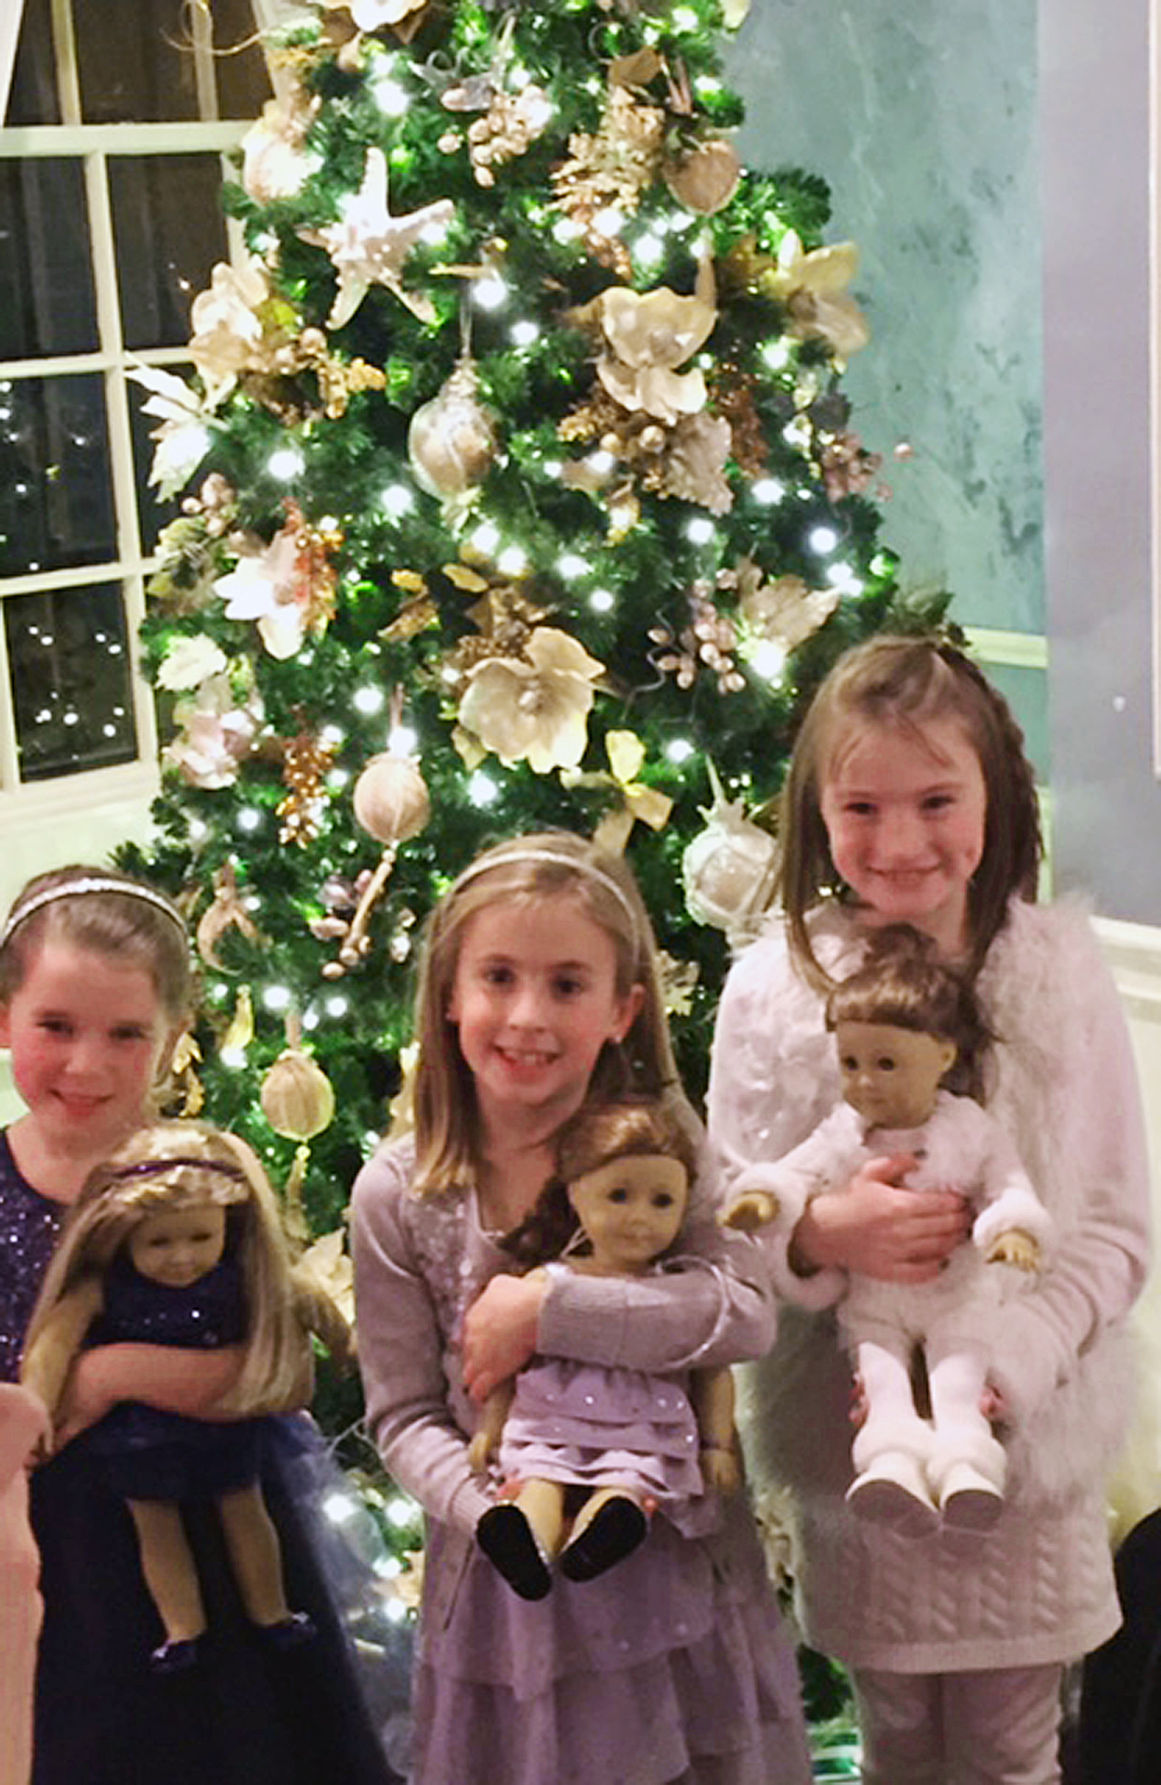 american girl holiday tea party - Christmas Decorations For American Girl Dolls